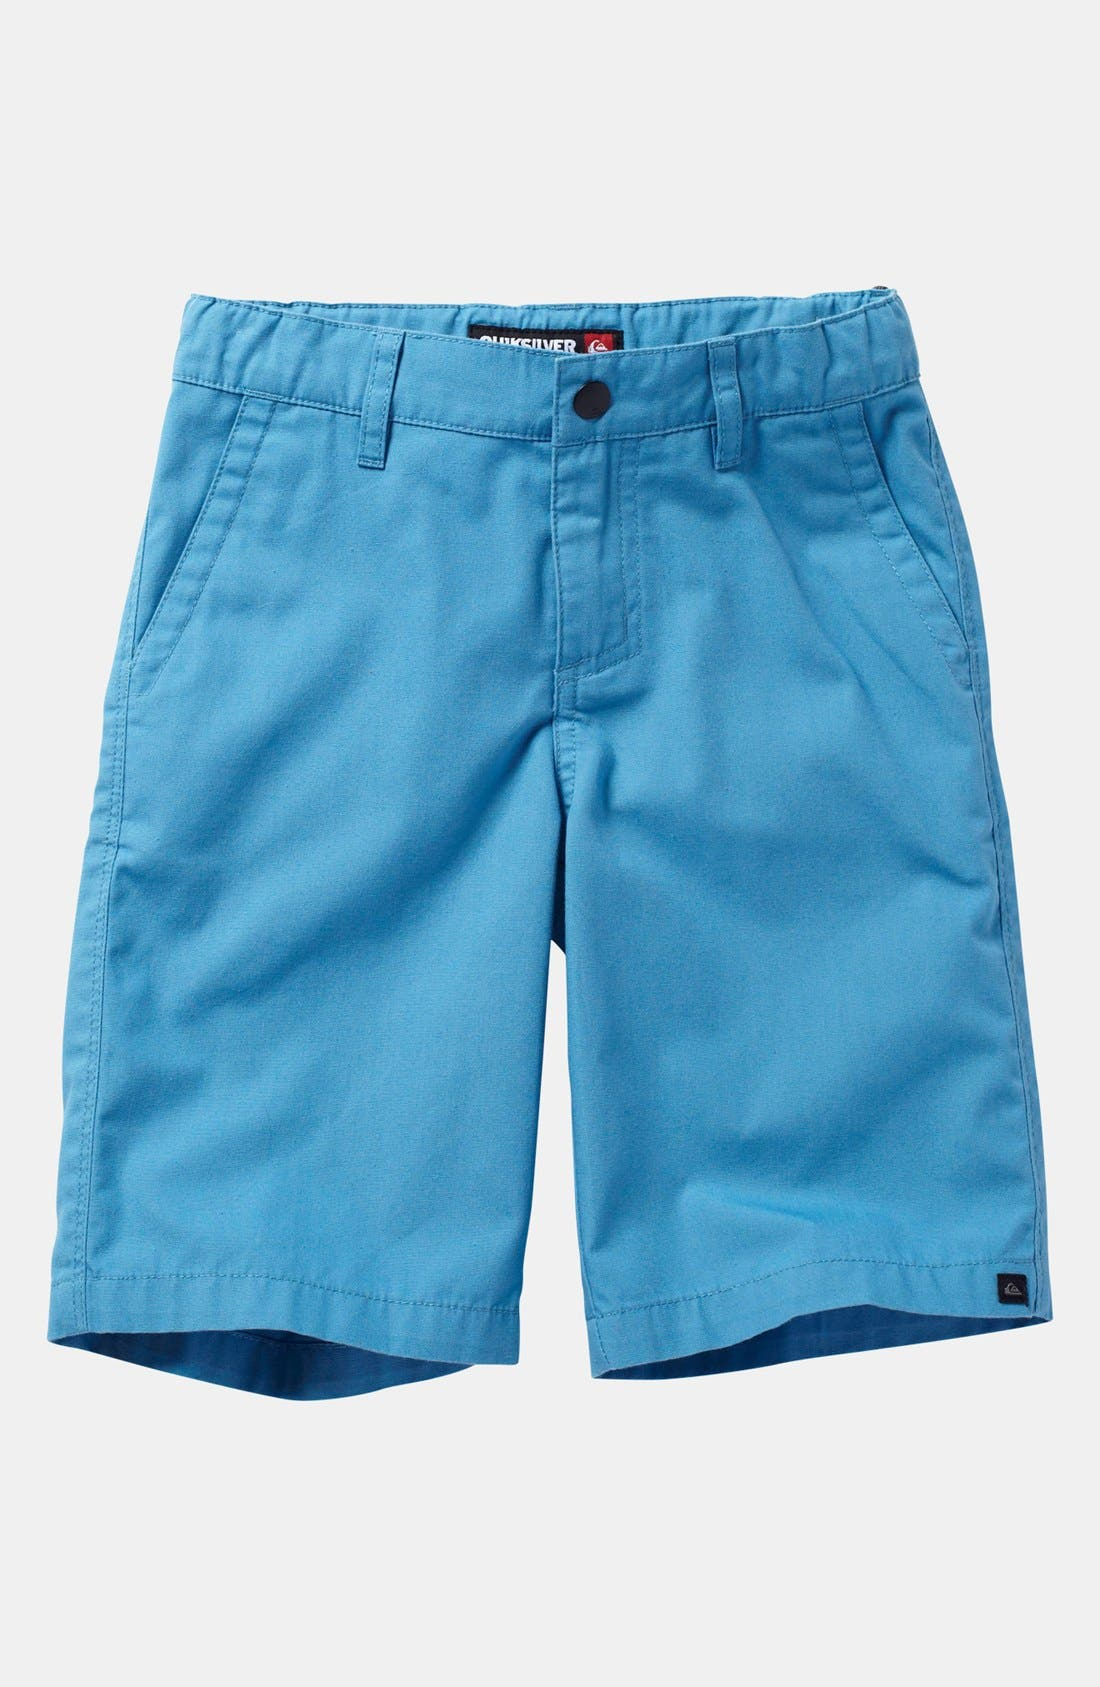 Alternate Image 1 Selected - Quiksilver 'Rockford' Shorts (Baby)